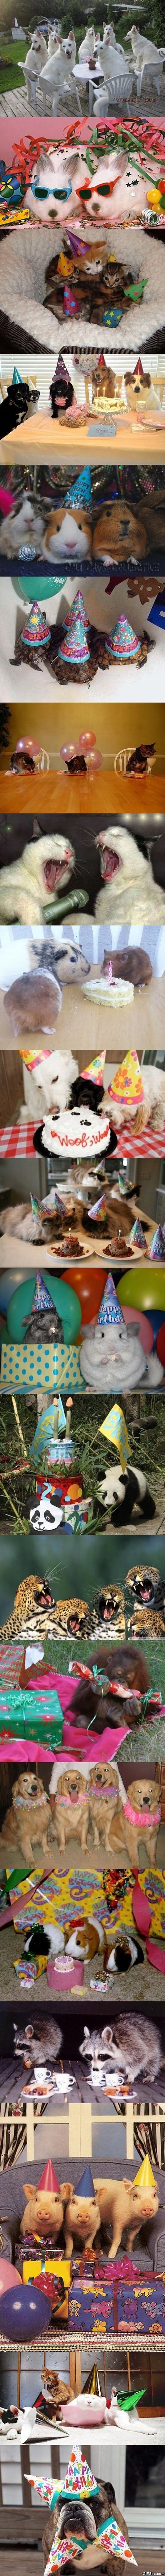 funny-funnest-animal-parties-ever